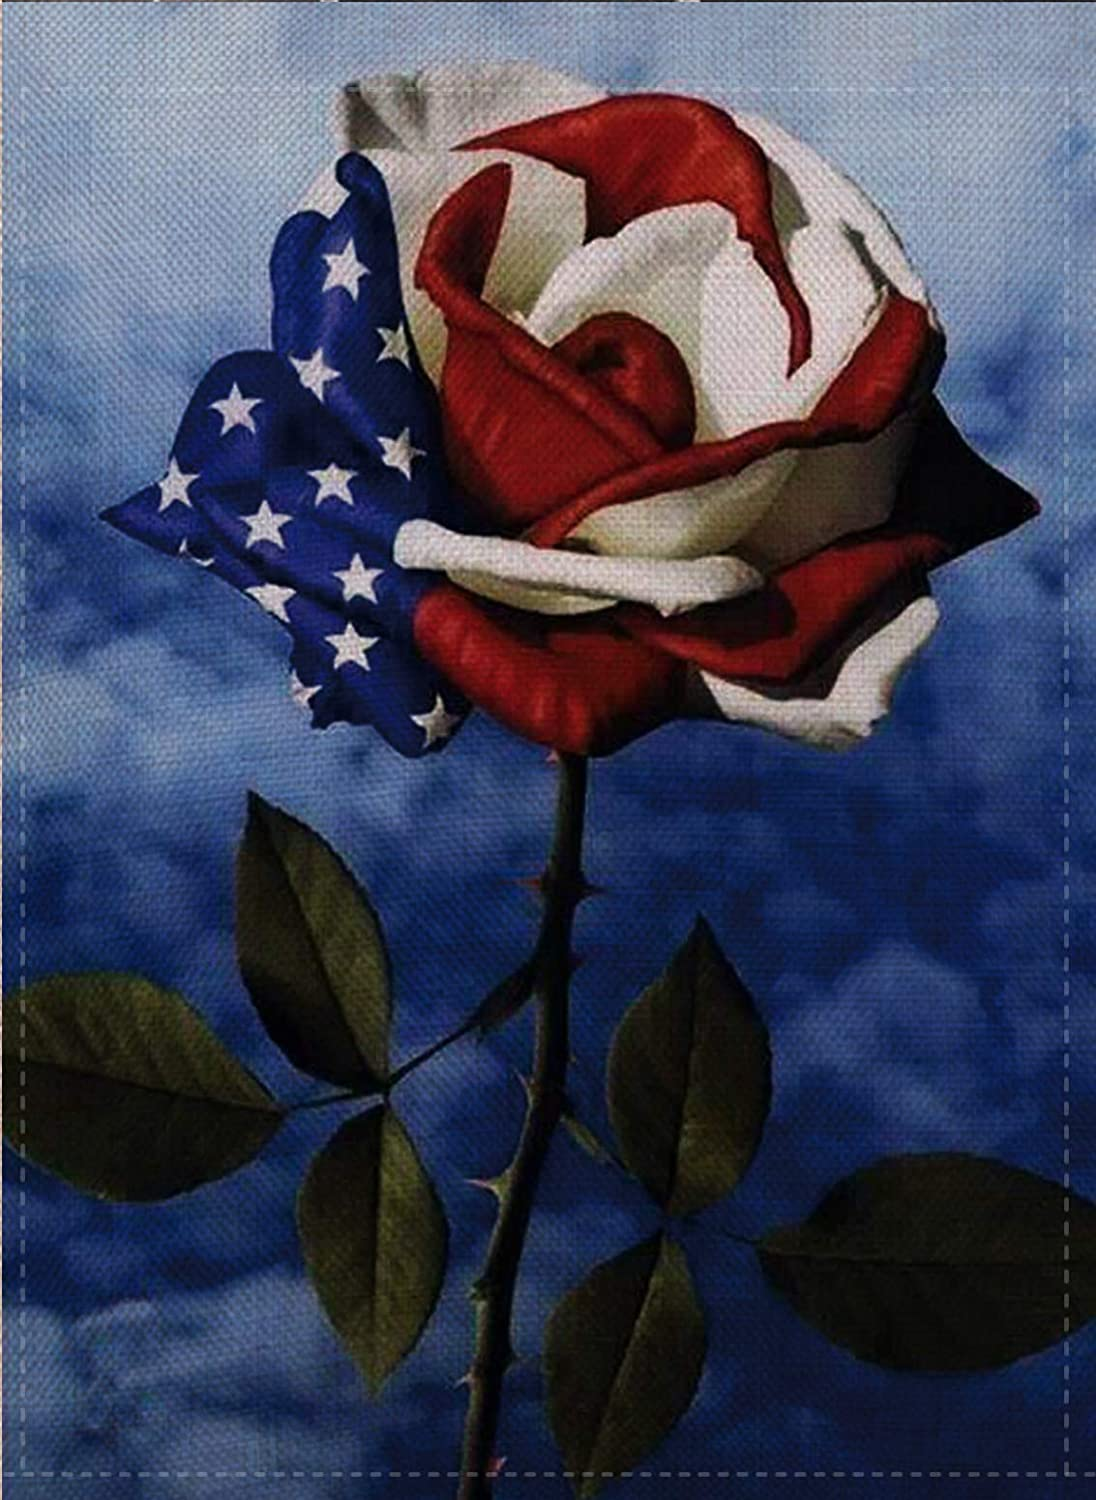 Dyrenson Home Decorative Love Small Patriotic Garden Flag July 4th Double Sided, Spring Summer Roses Burlap House Yard Decoration, Seasonal Outdoor Décor Flag 12.5 x 18 American Veteran Memorial Day